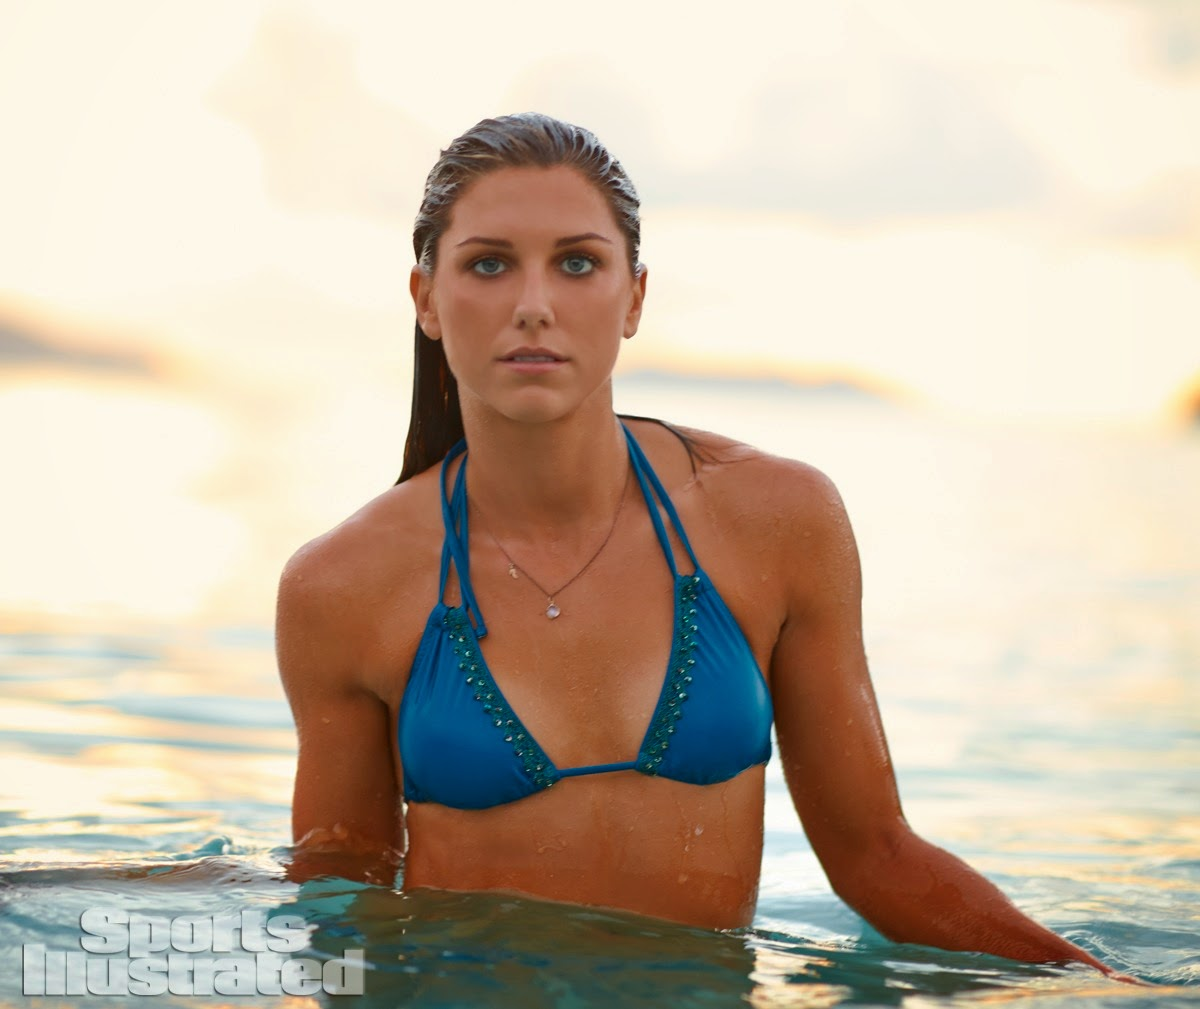 US Soccer Player Alex Morgan shows off bikini looks for the Sports Illustrated 2014 Swimsuit Issue